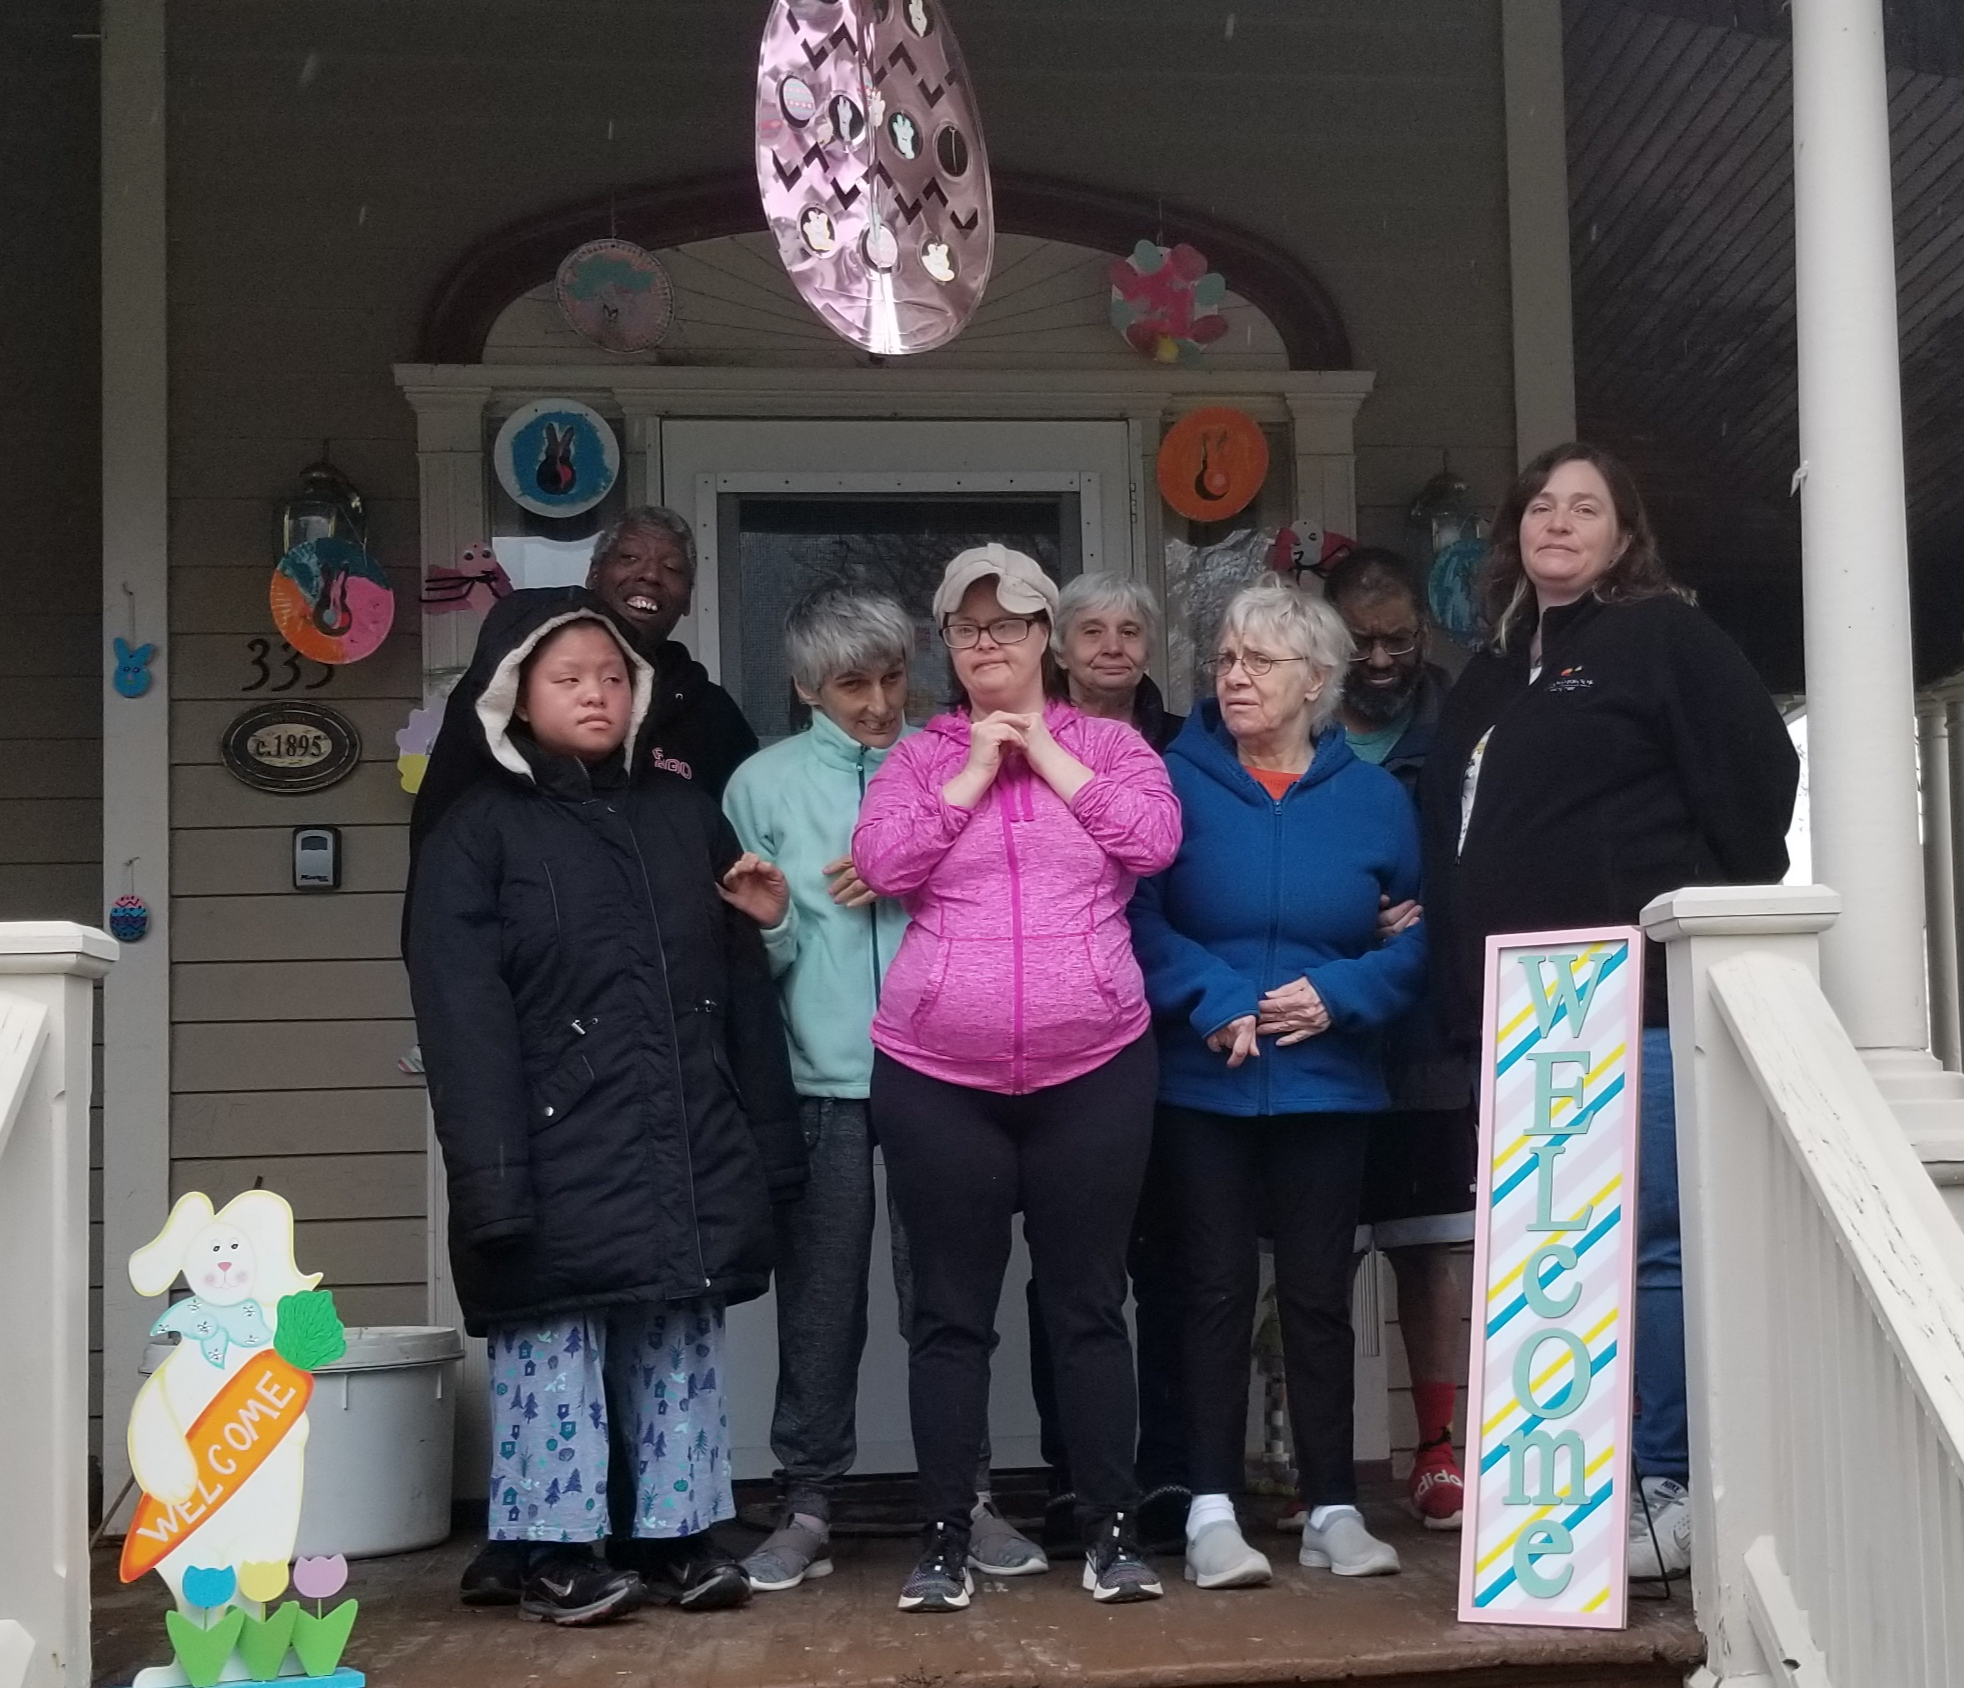 2020PorchContest Otego - Otego - Fun Art Friday